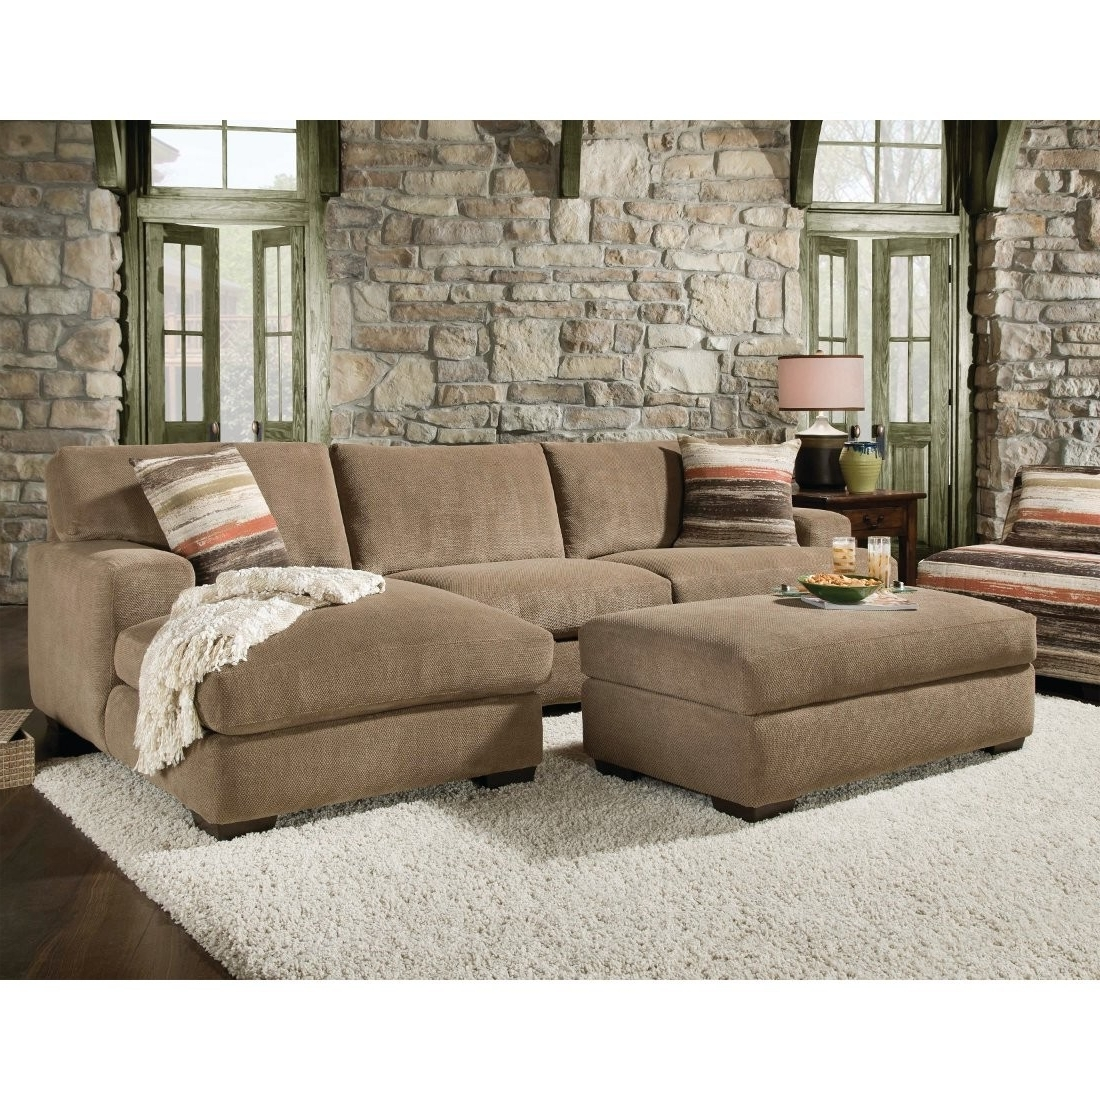 Current Beautiful Sectional Sofa With Chaise And Ottoman Pictures With Brown Sectionals With Chaise (View 12 of 15)